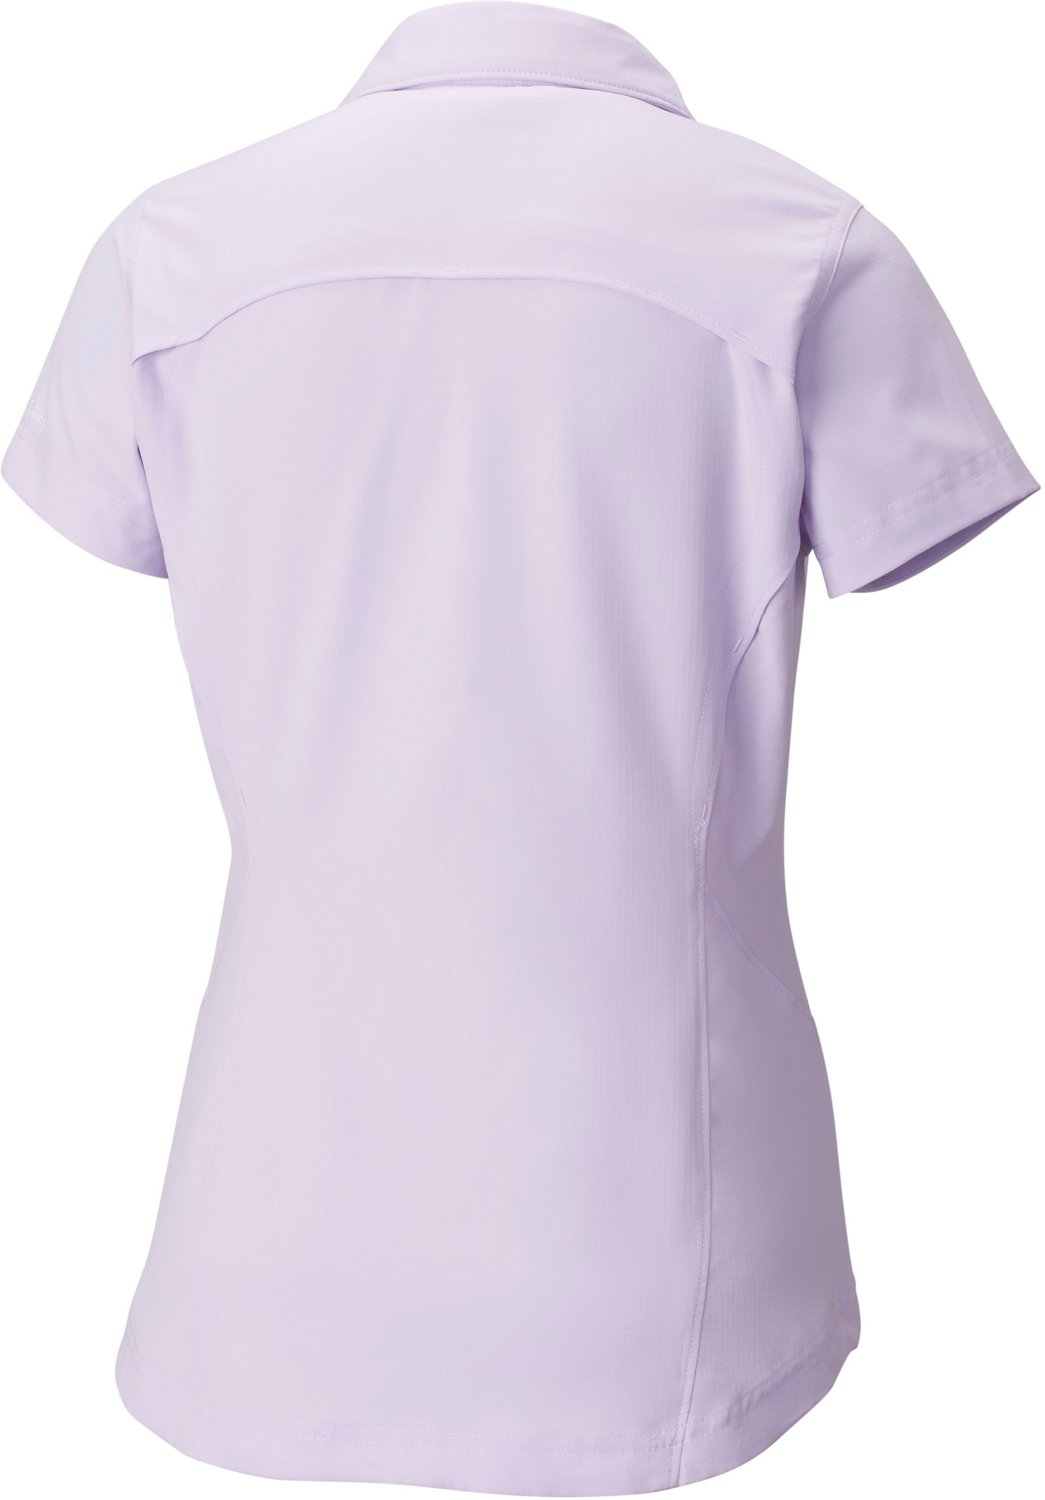 Columbia Sportswear Women's Silver Ridge Short Sleeve Shirt - view number 1